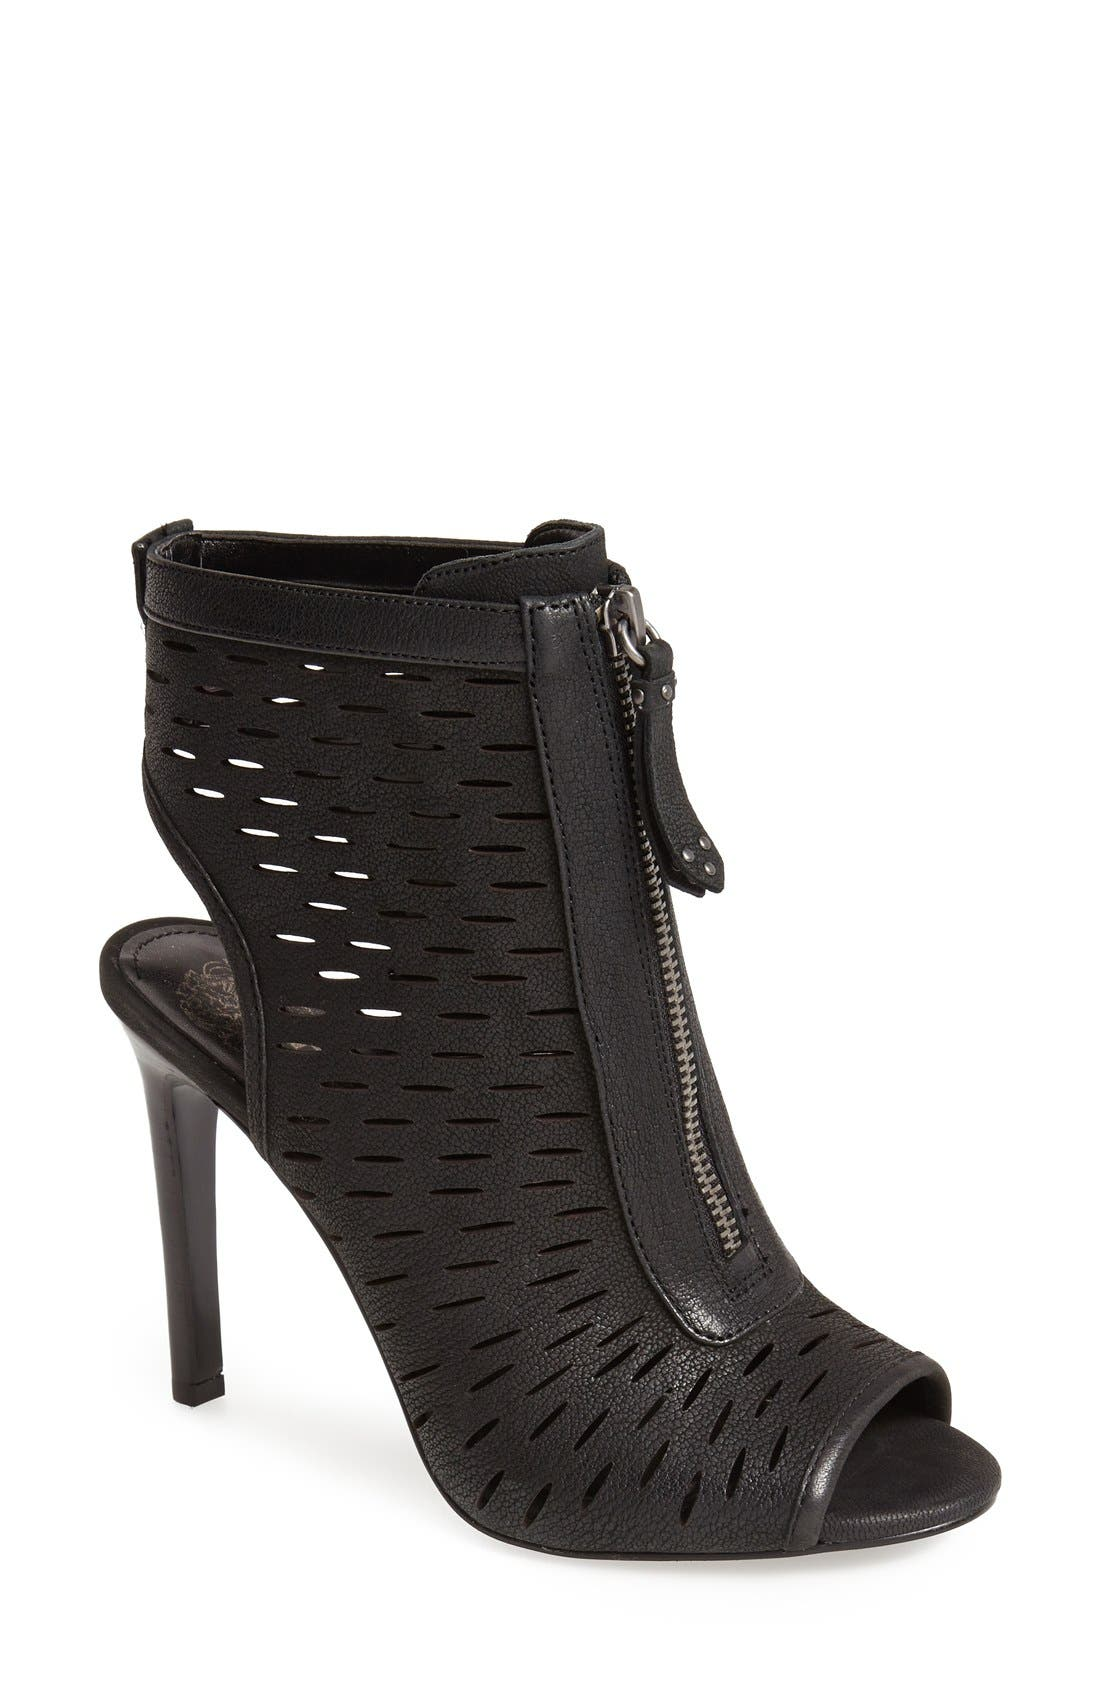 VINCE CAMUTO 'Waver' Peep Toe Bootie, Main, color, 001